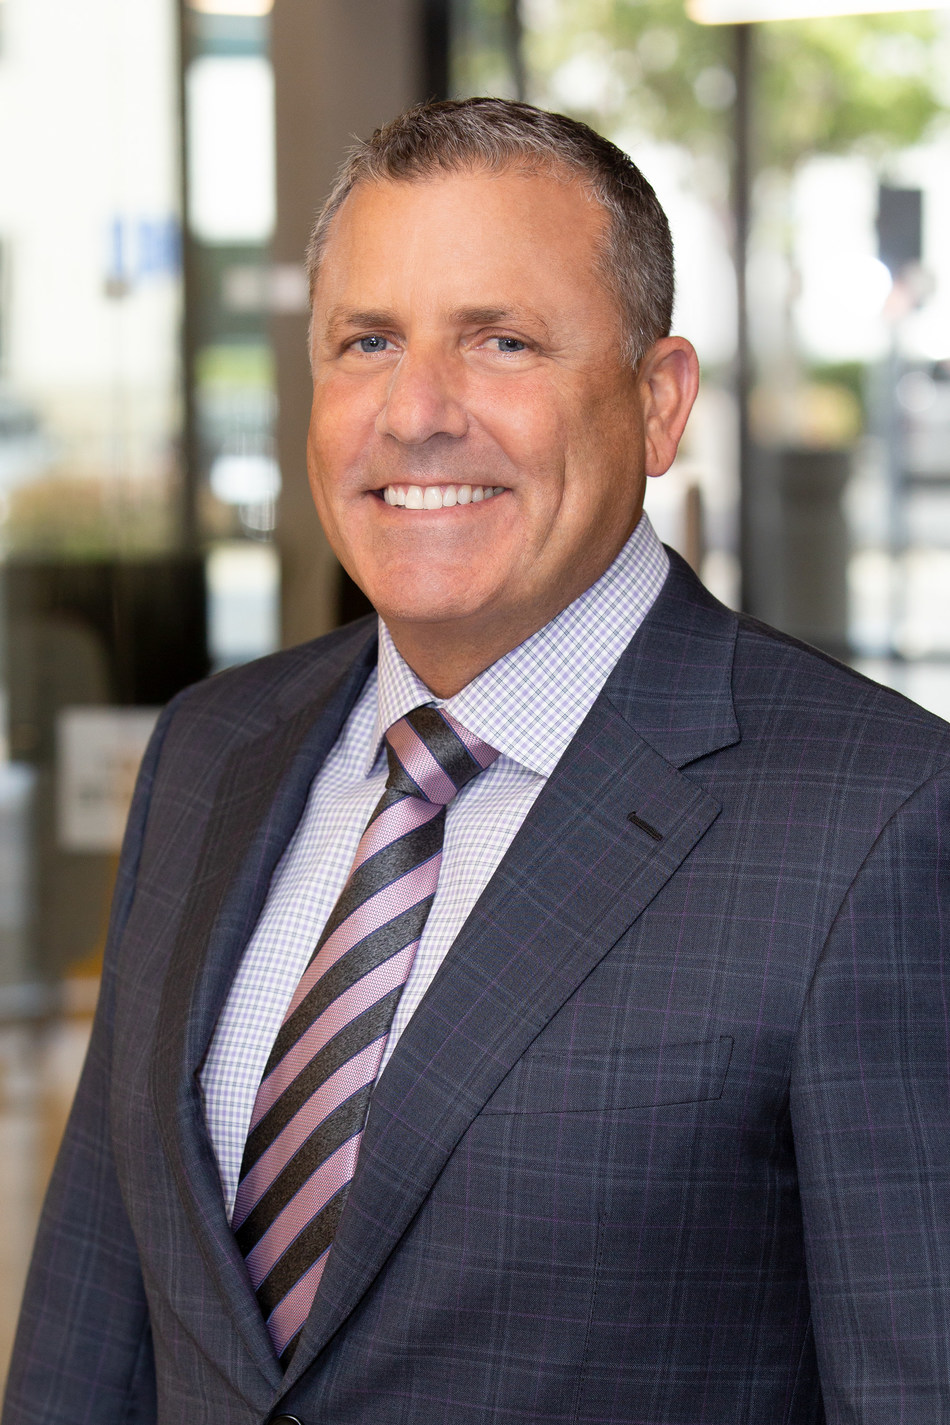 Rick Arvielo, CEO of New American Funding